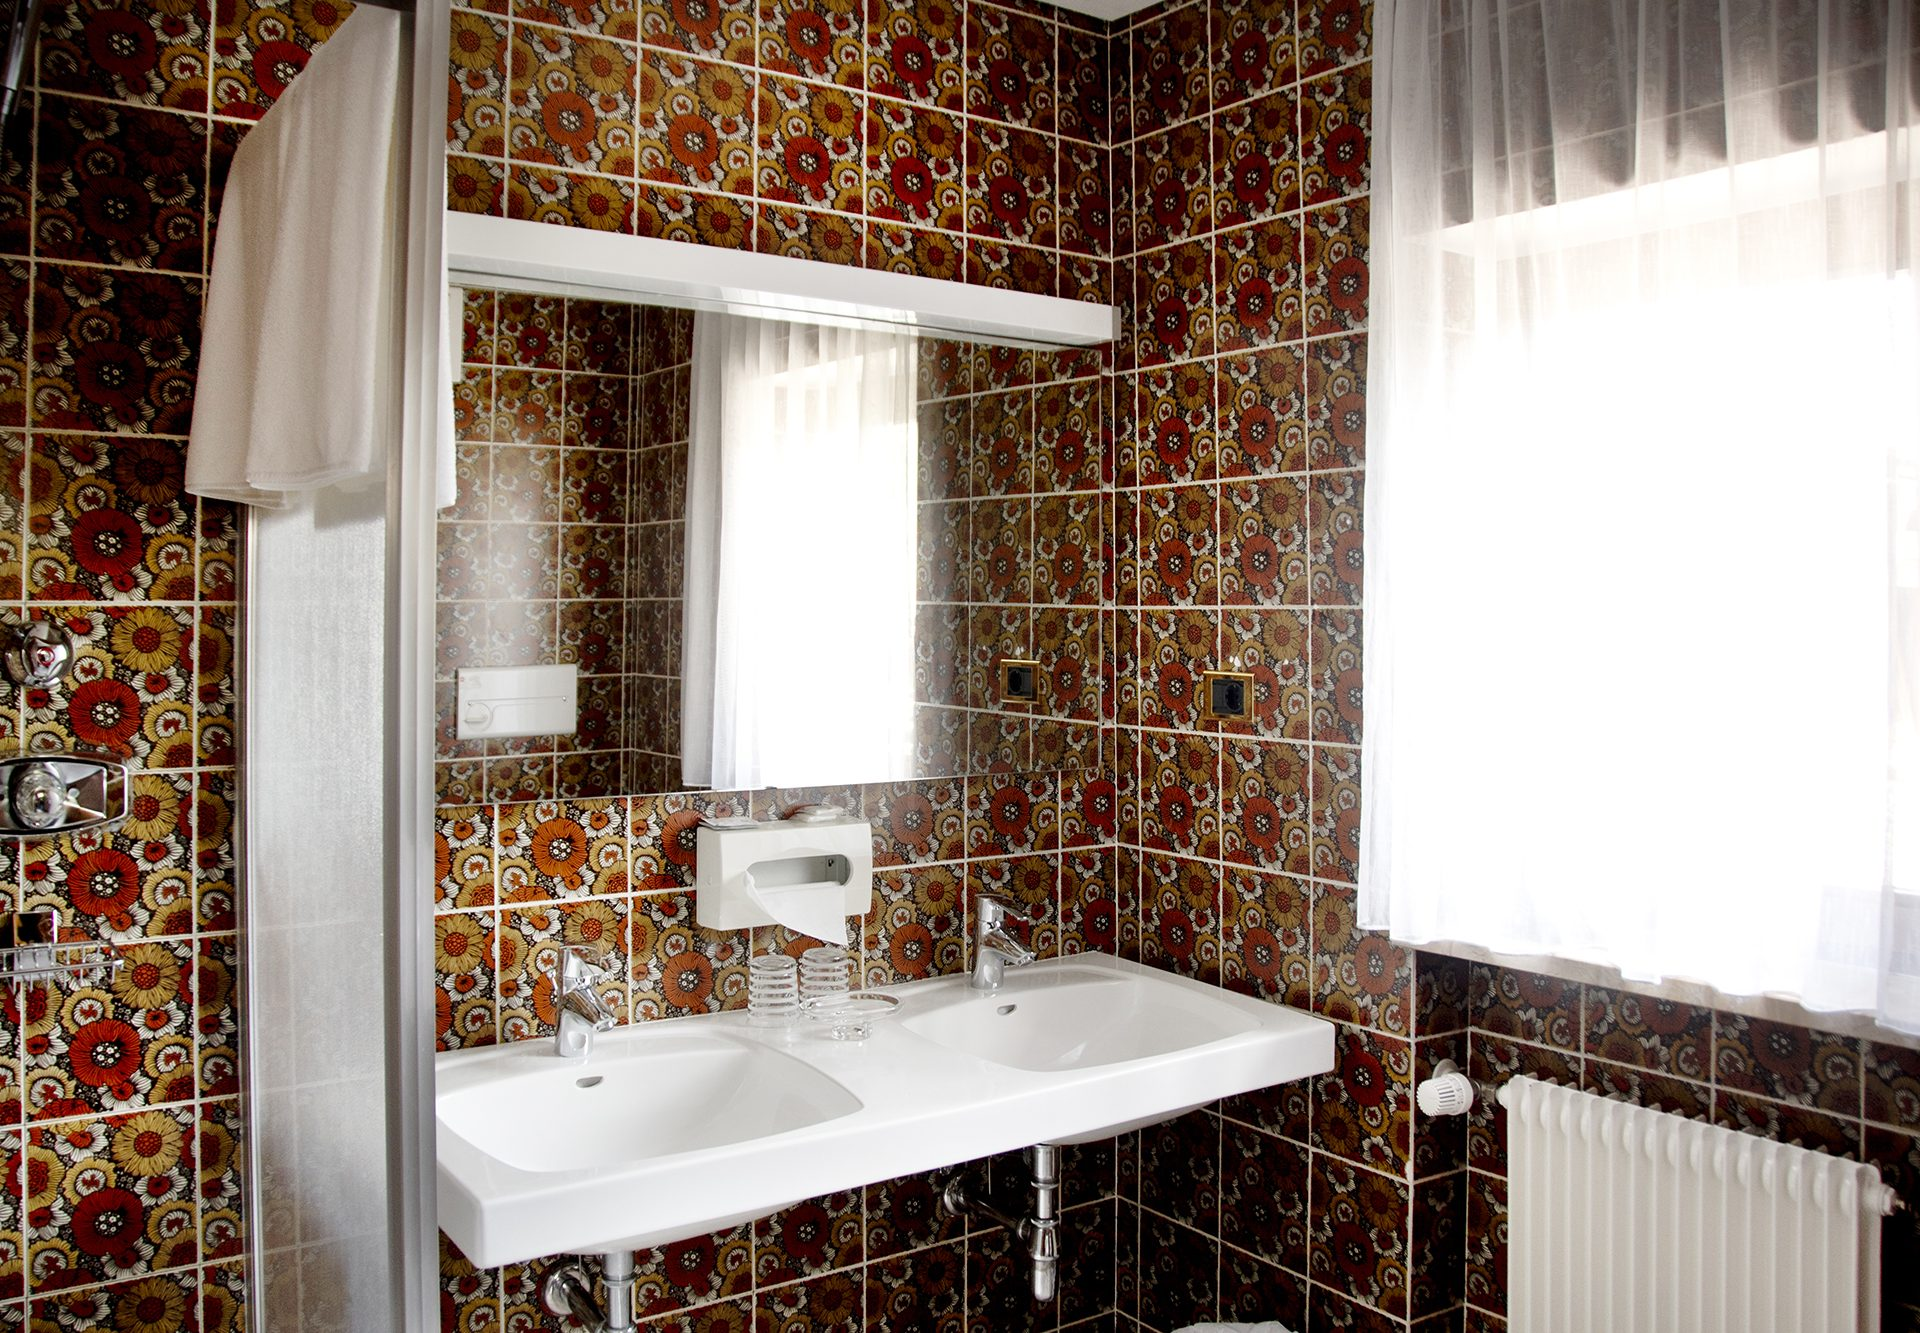 Bagno del Residence Mayr